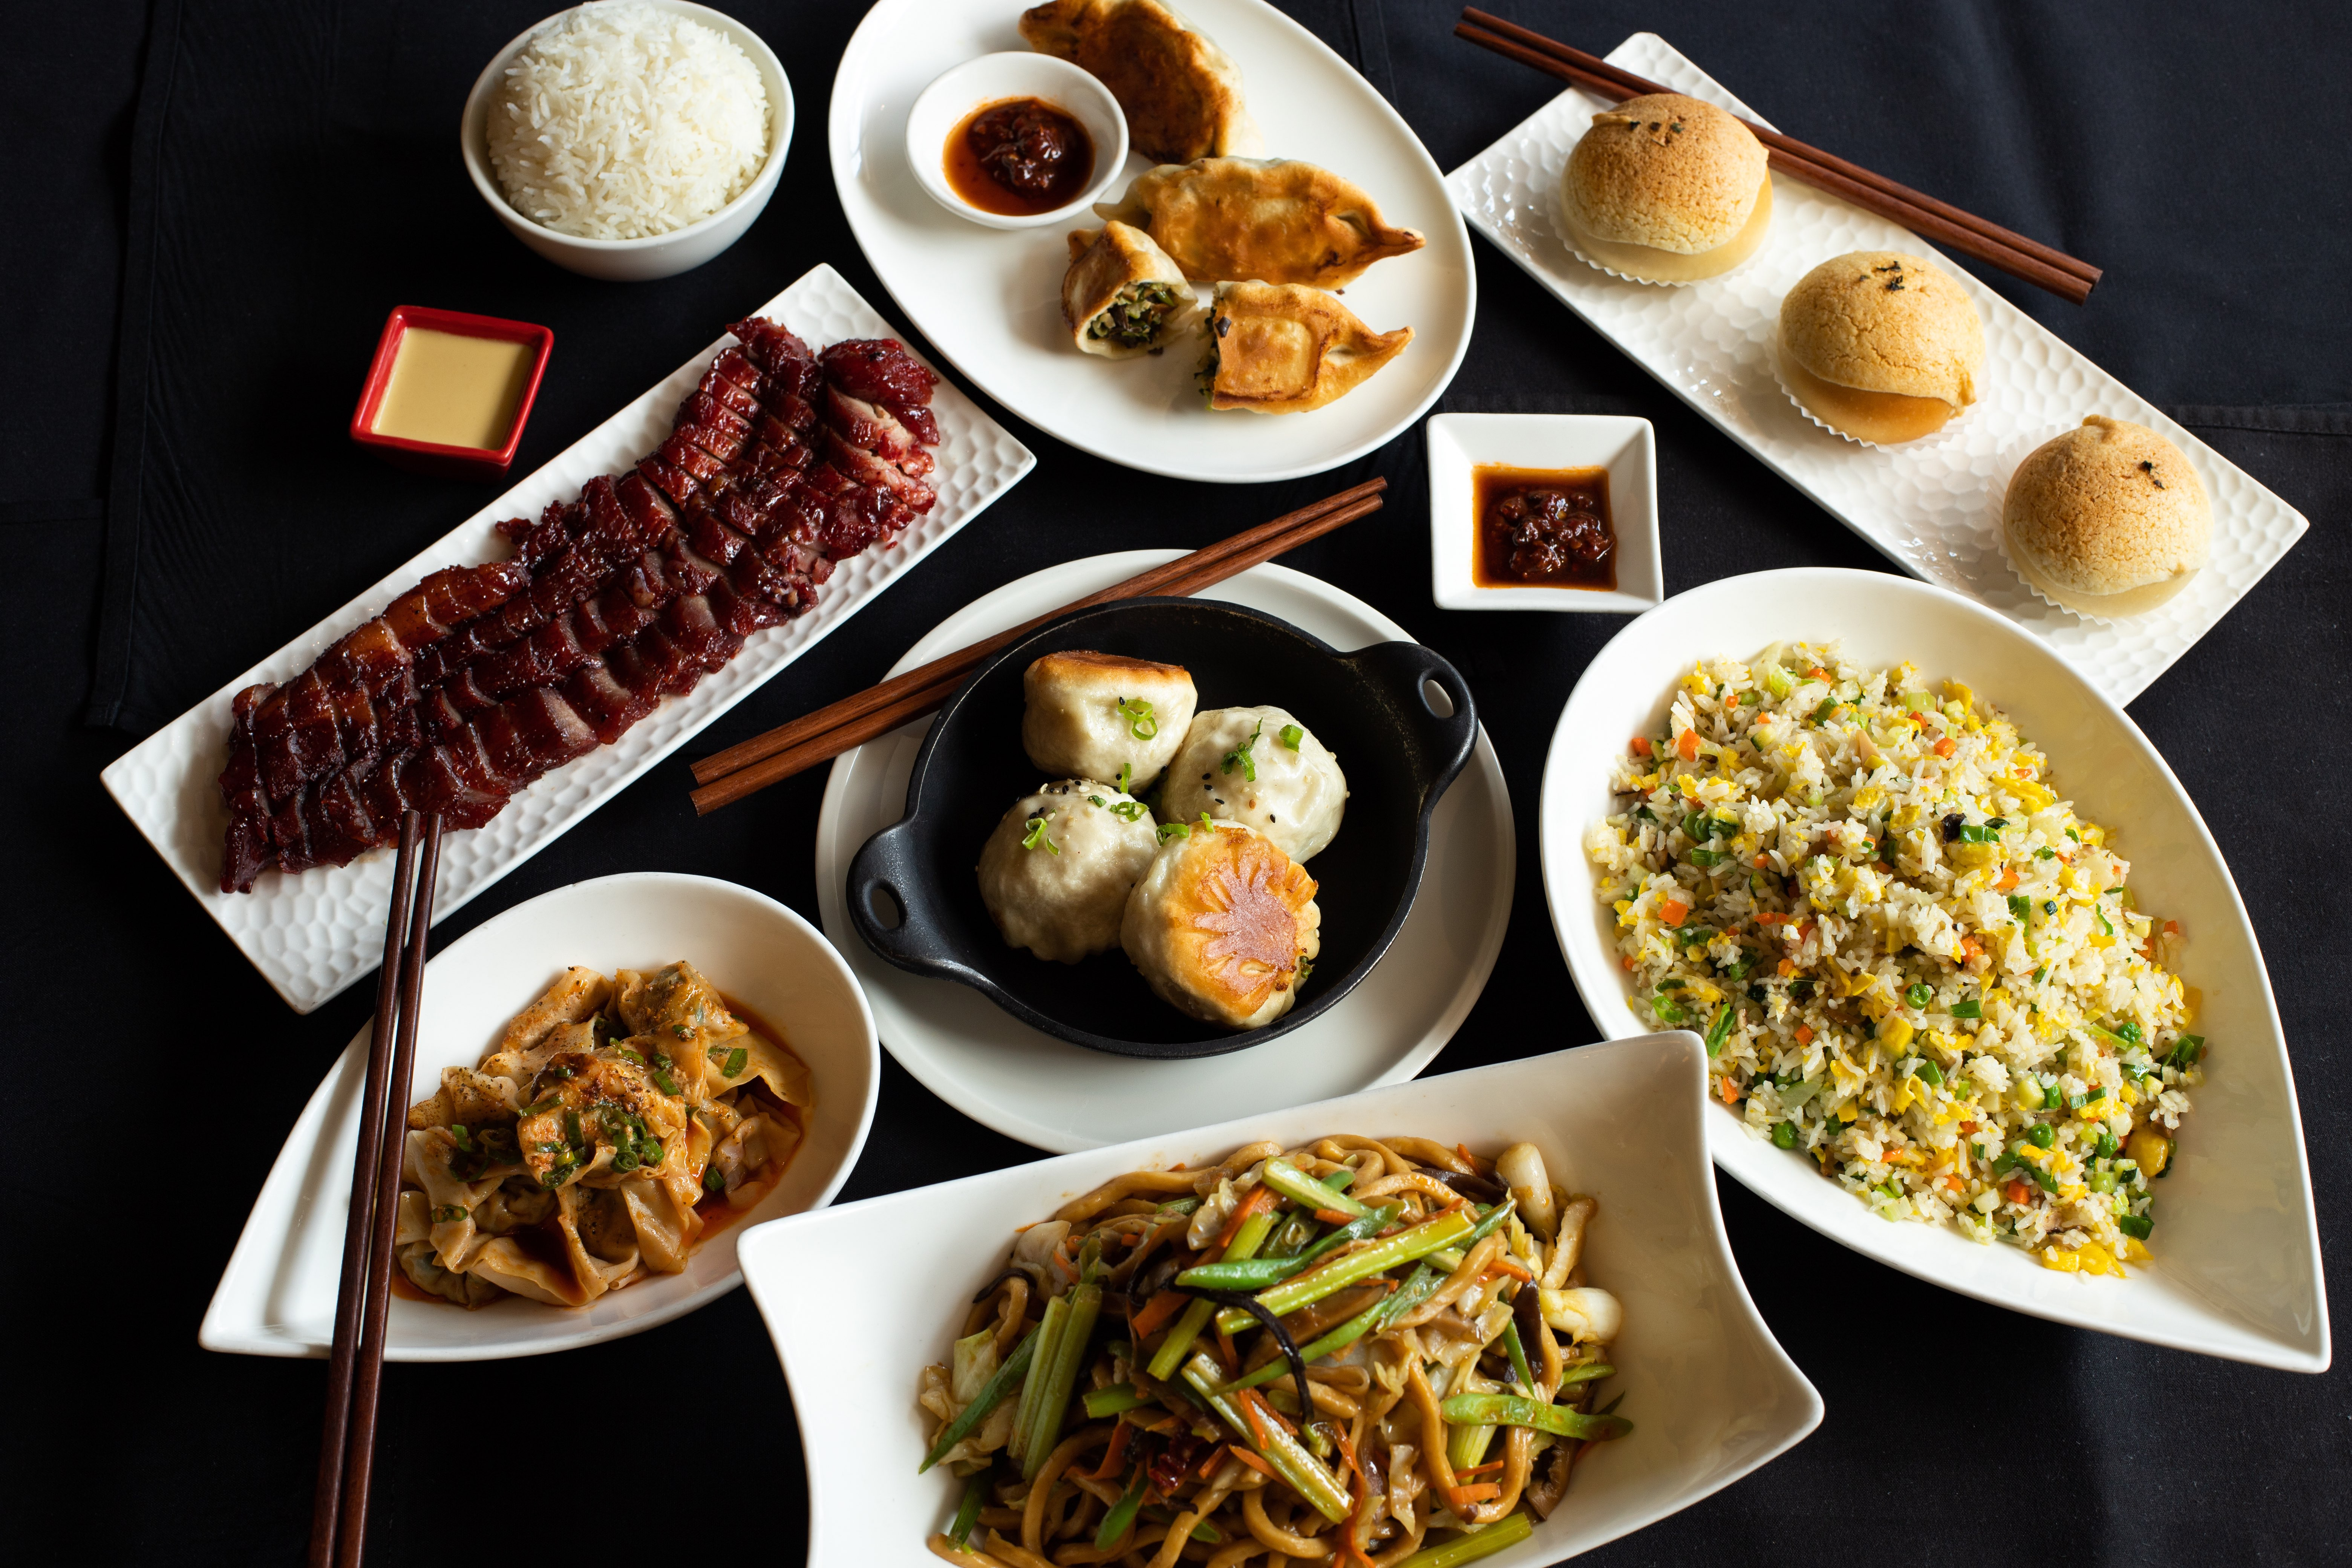 A lineup of the China Live dishes that will be available for takeout via its new ghost kitchen collaboration — including its sheng jian bao, roast pork, barbecue pork buns, and fried rice